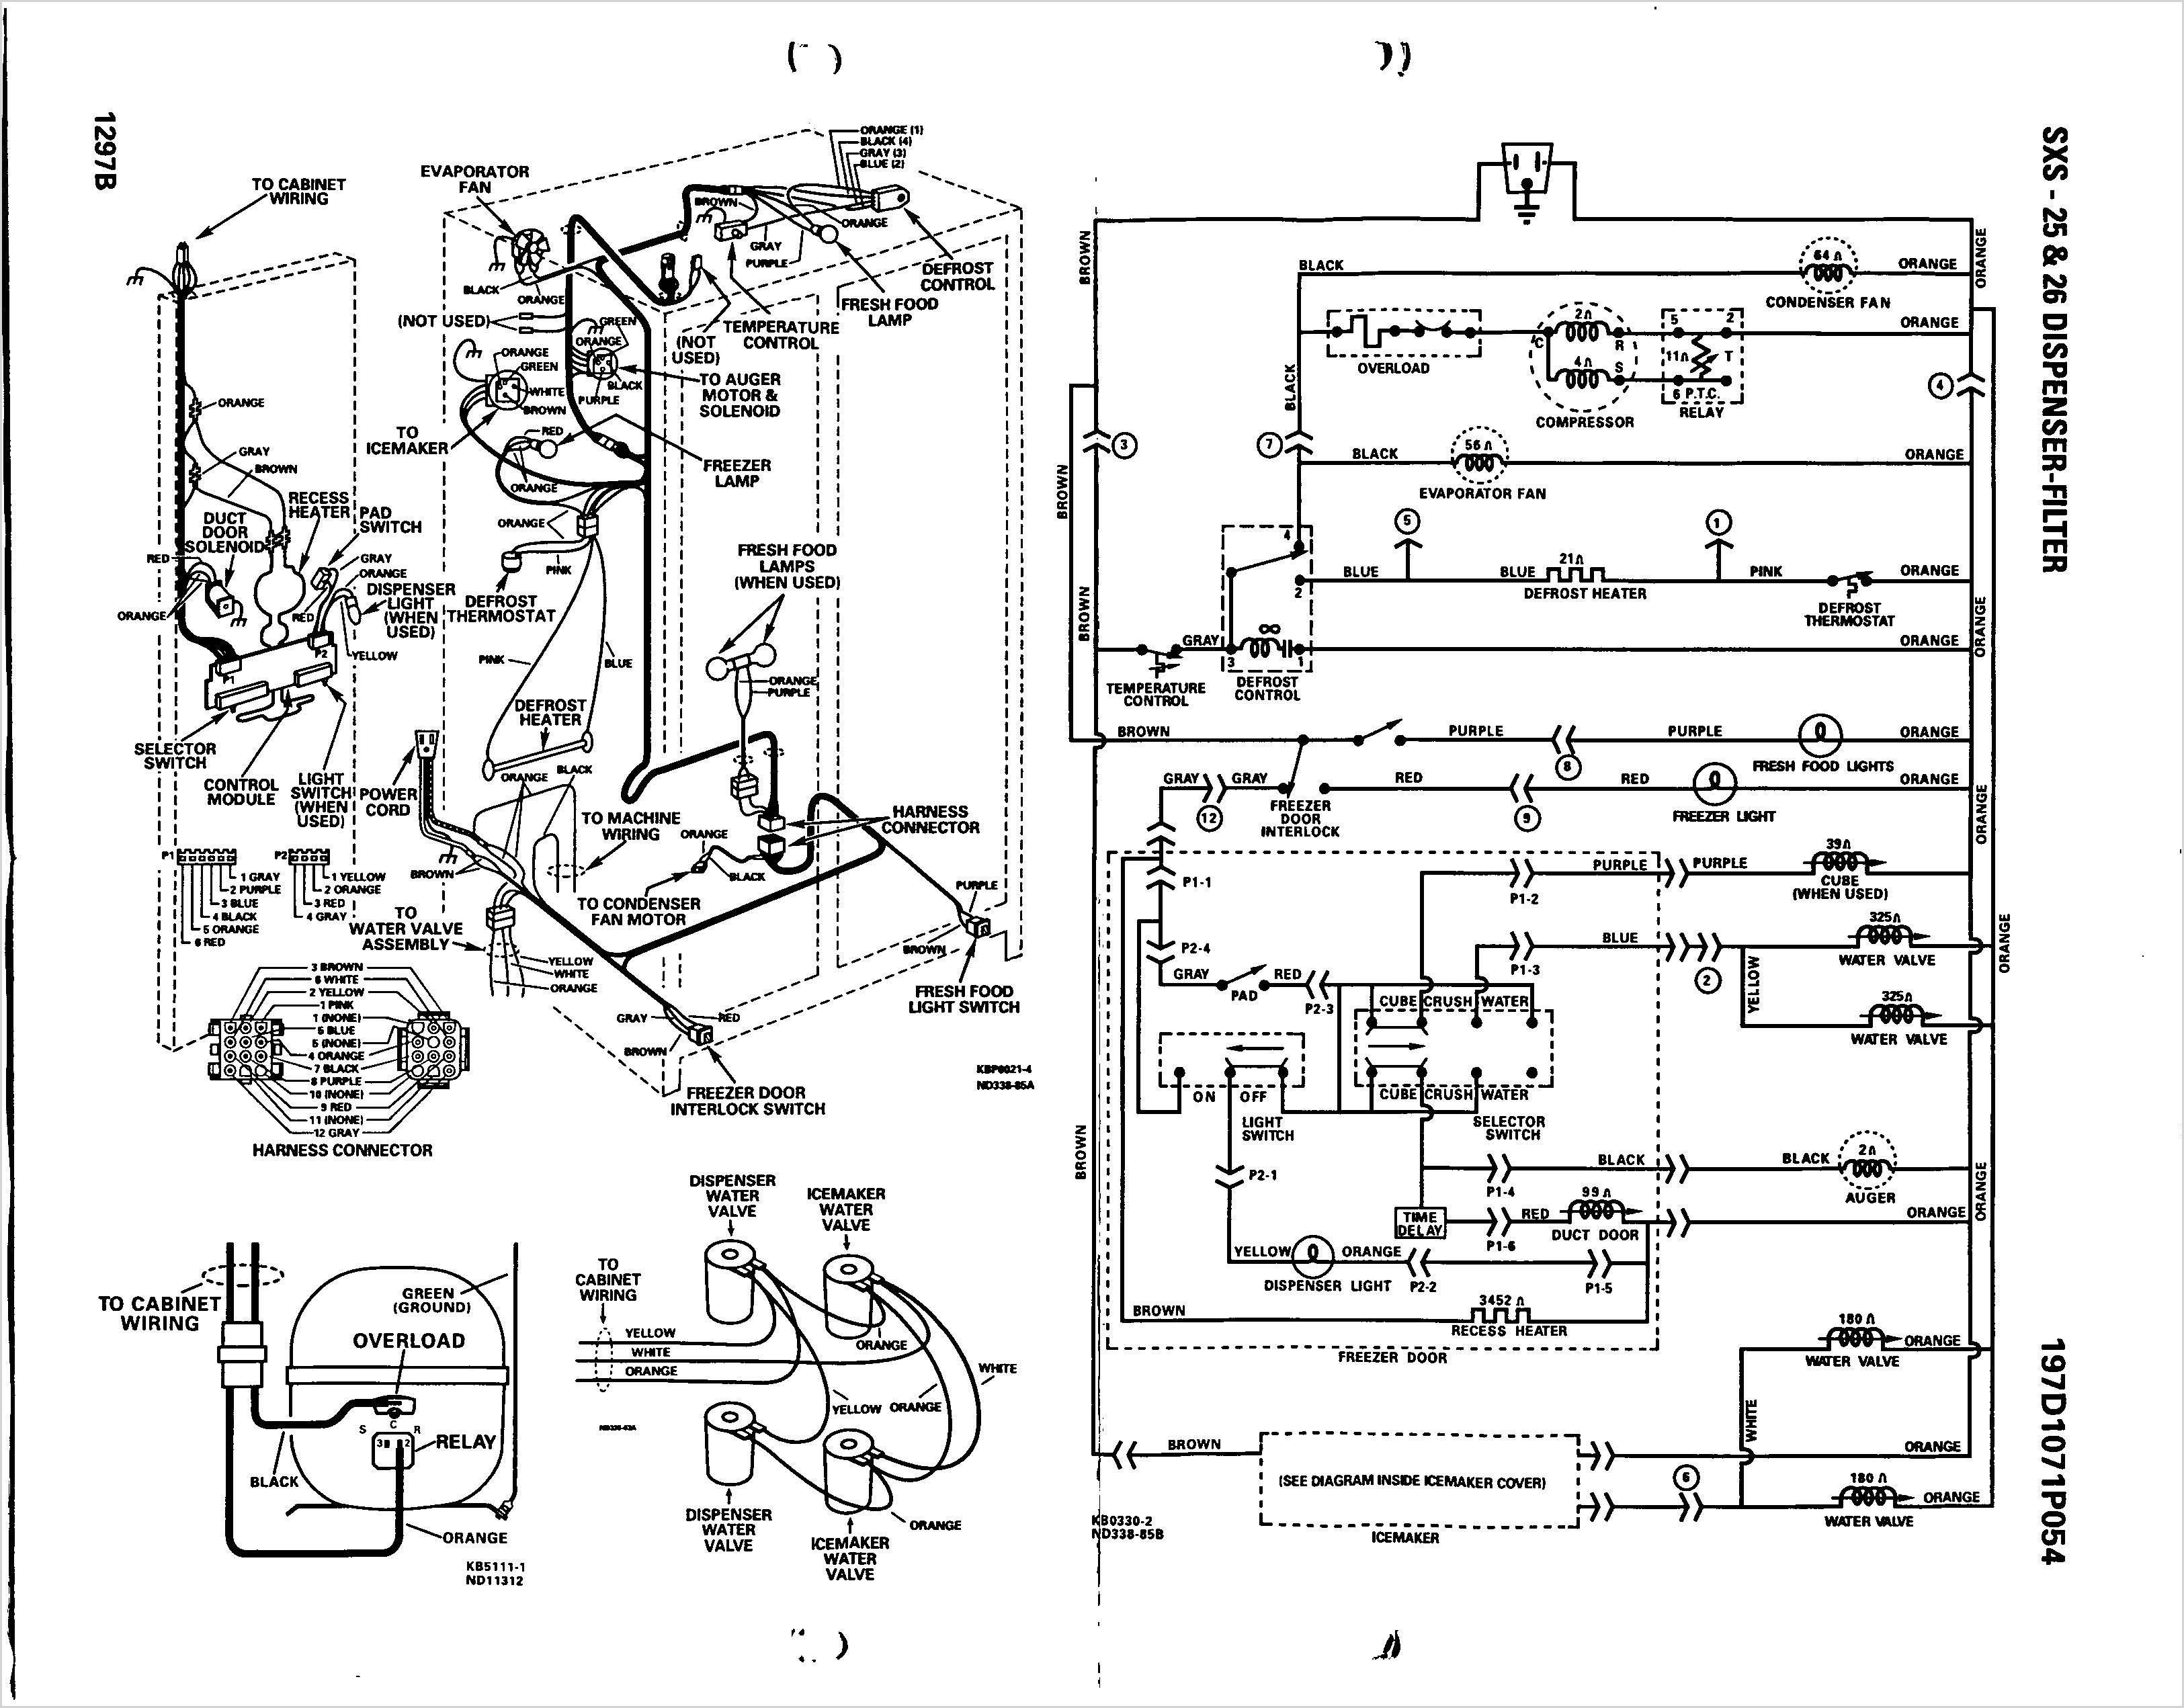 [QNCB_7524]  Jasco Alternator Wiring Diagram - Cat Fork Lift Wiring Diagrams for Wiring  Diagram Schematics | Skytronics Jasco Alternator 24 Volt Wiring Diagram |  | Wiring Diagram Schematics